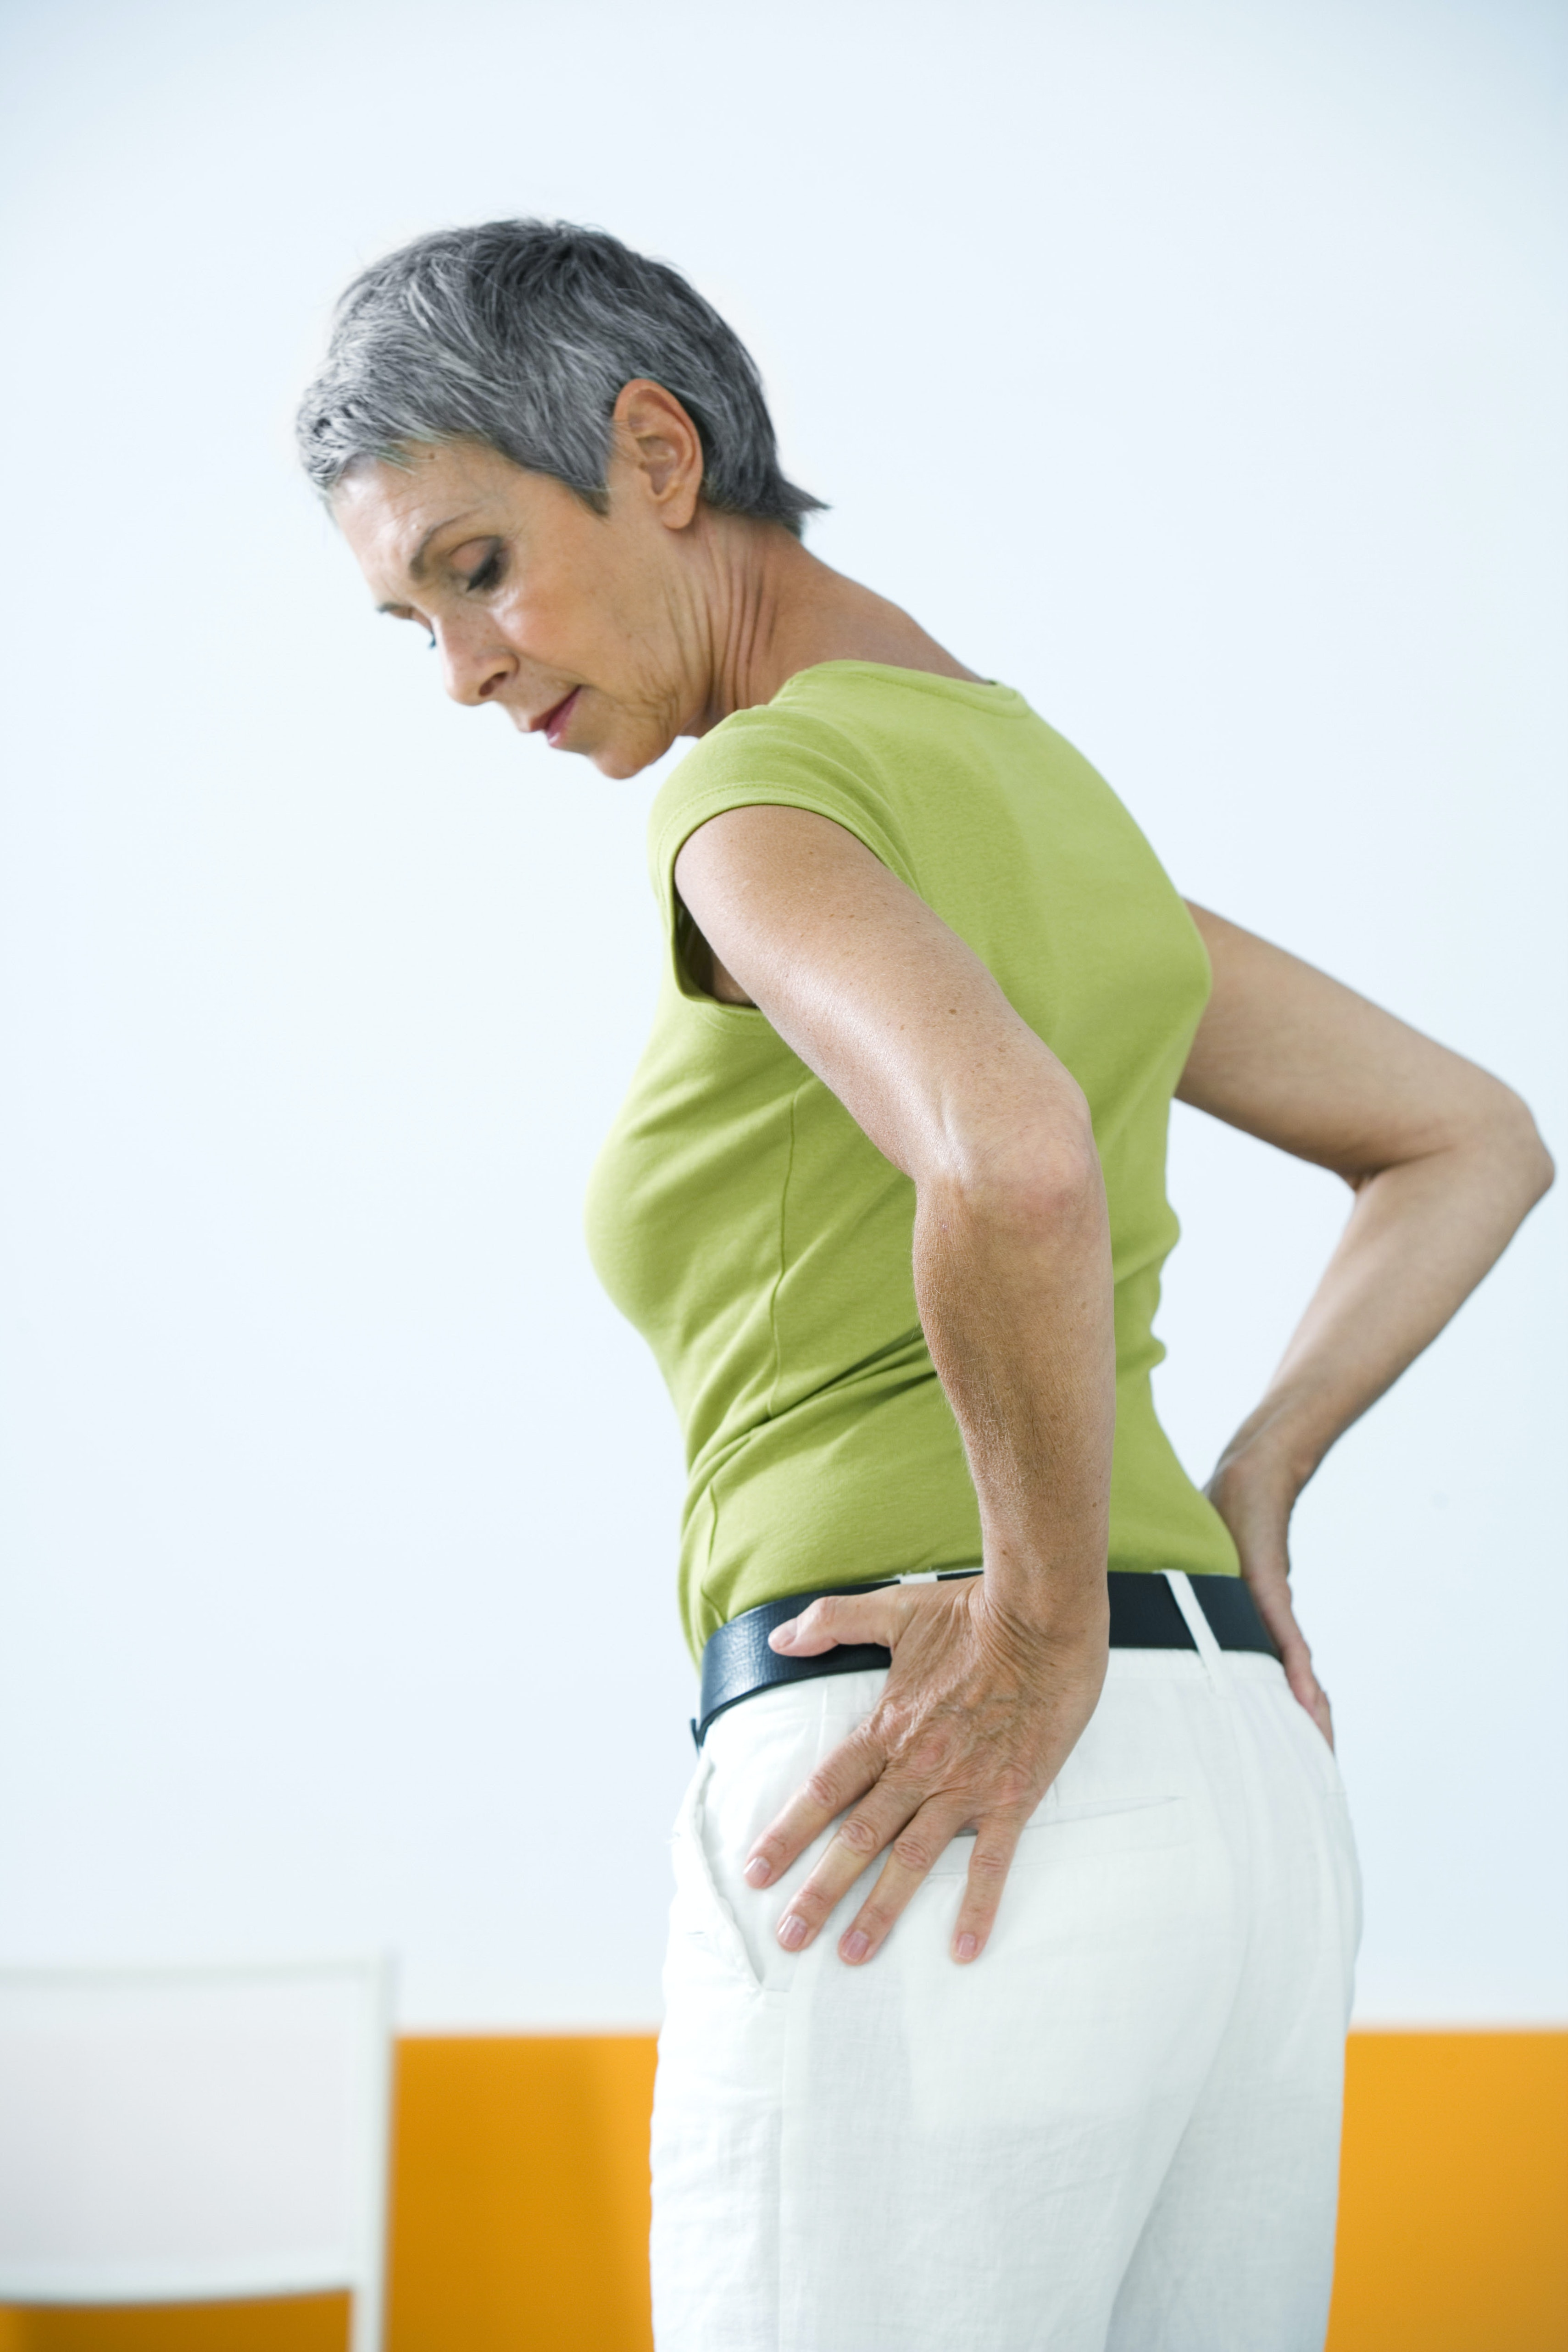 An image depicting a person suffering from dull, achy hip pain symptoms